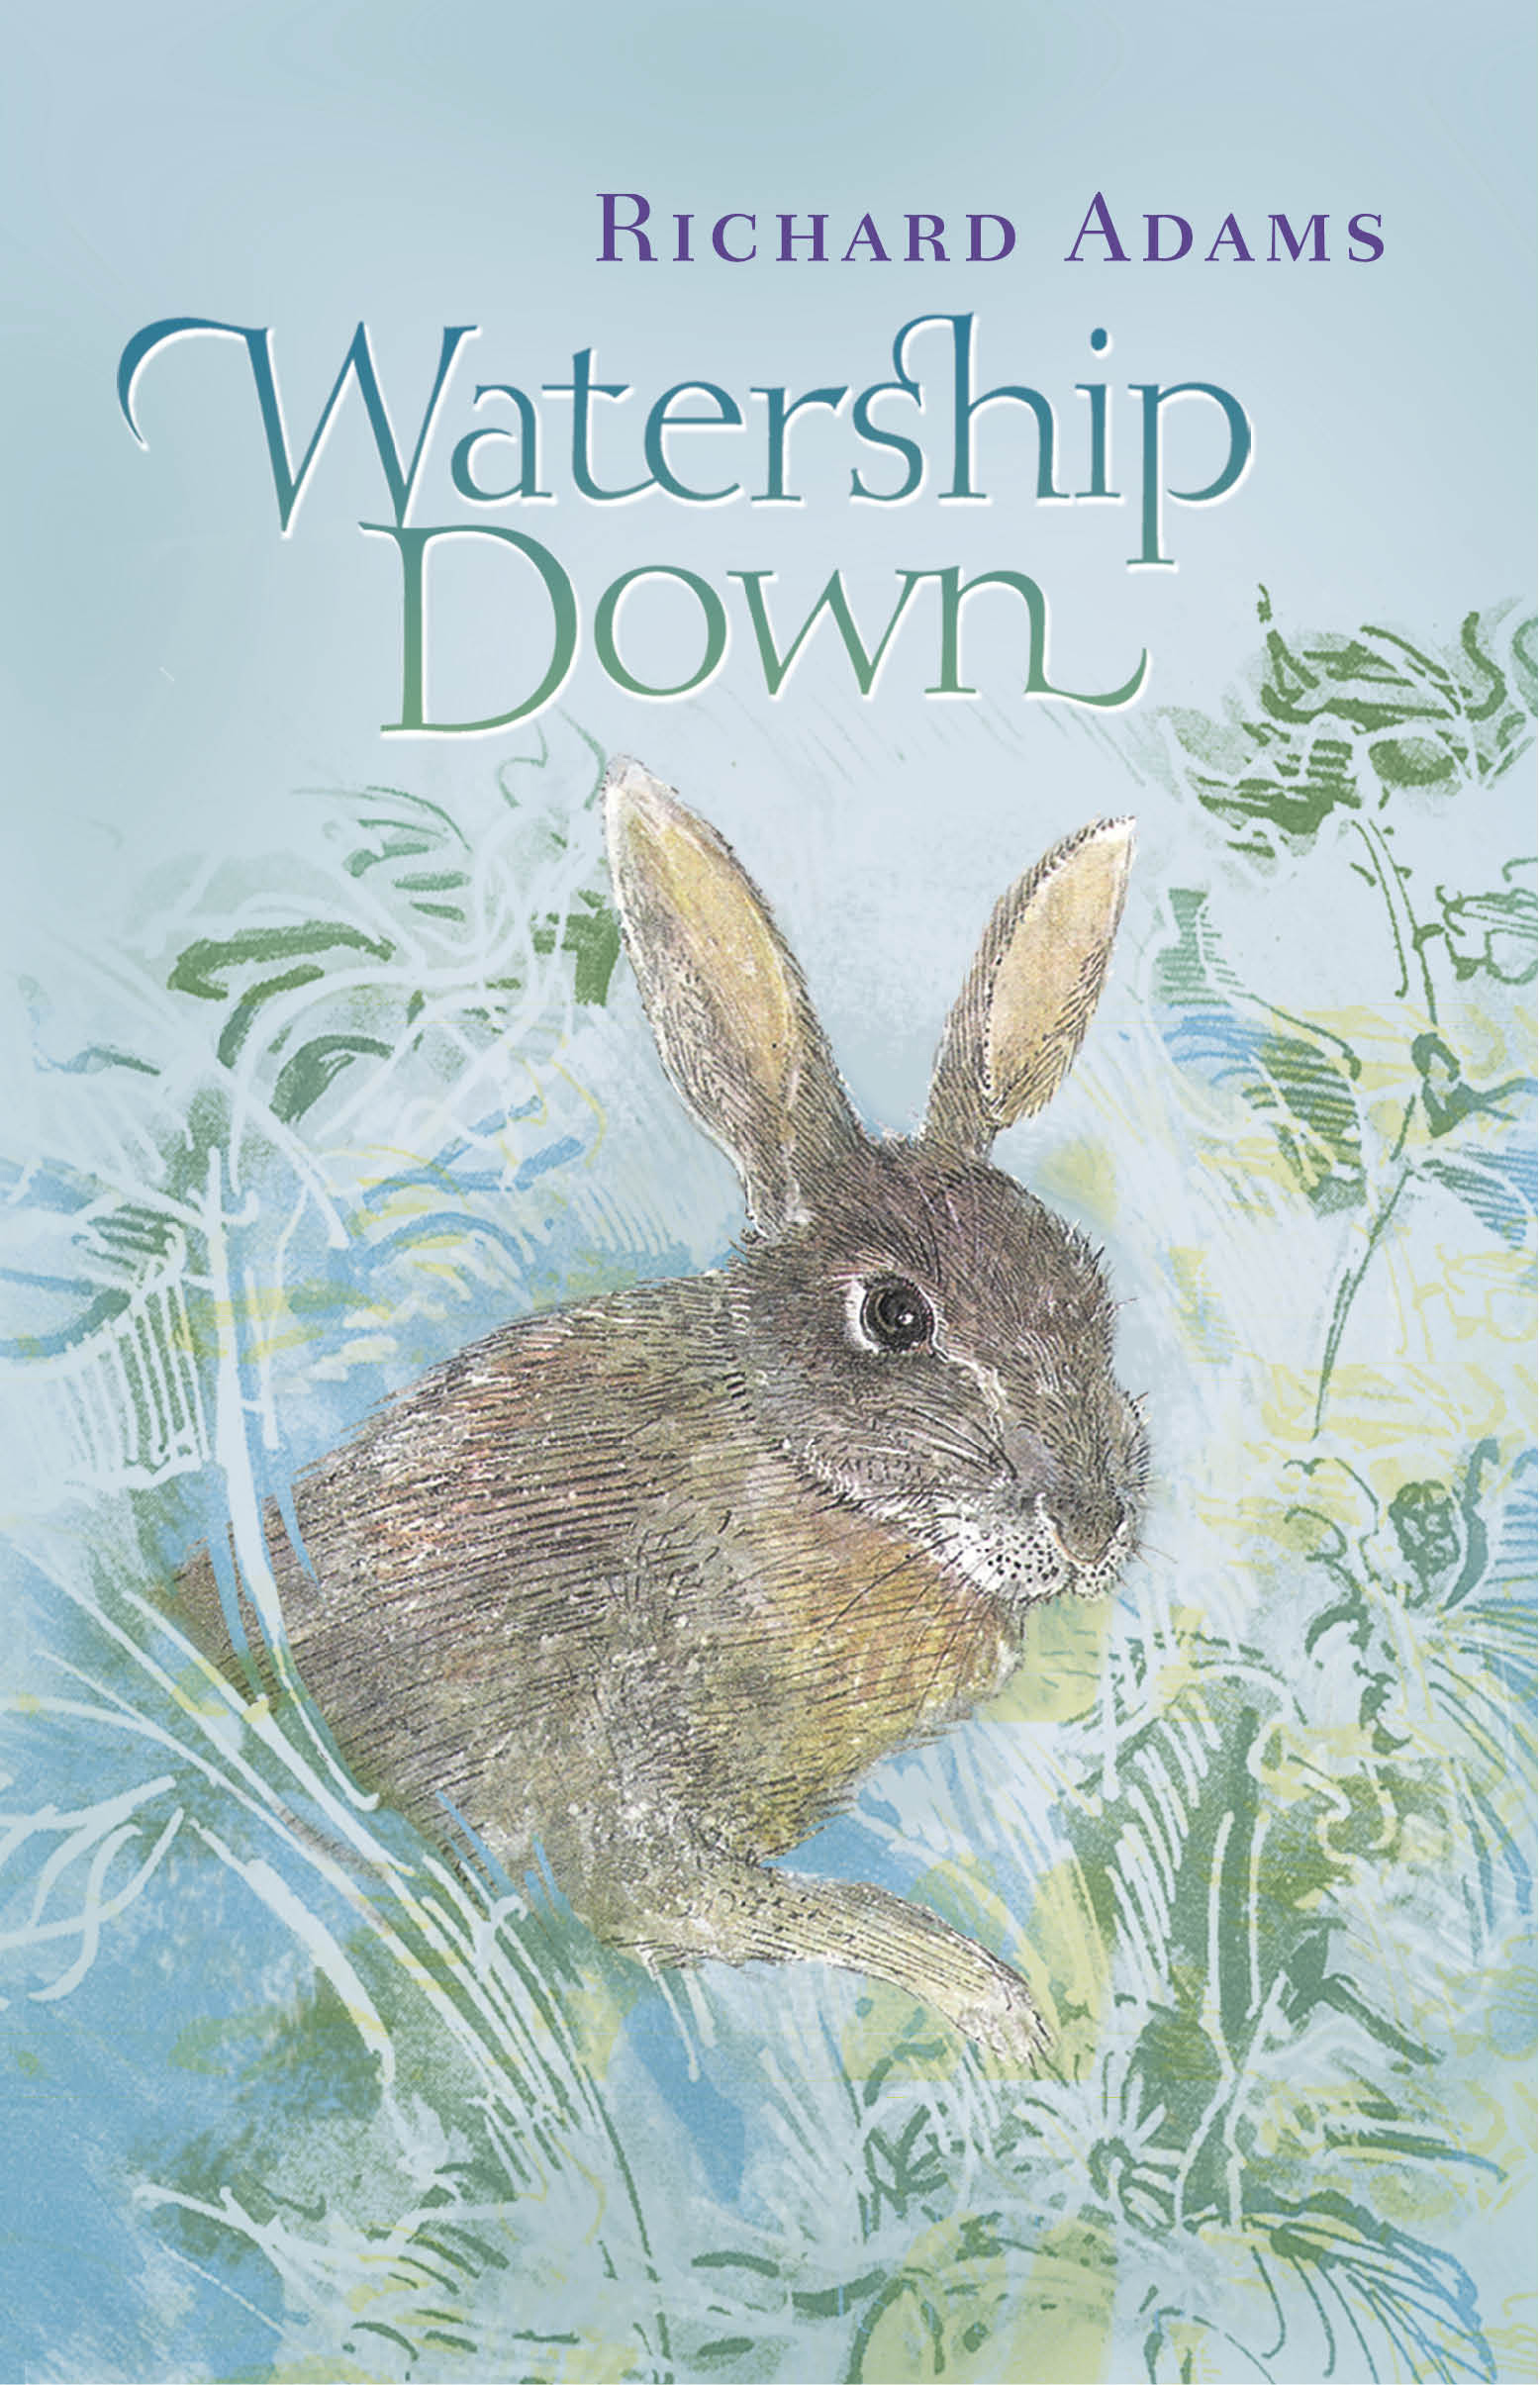 watership down an analysis of the The success of watership down results from several stylistic features the first technique is the use of epigraphs at the beginning of each chapter these epigraphs, drawn from the bible, classical literature, english poetry, science, and folklore, serve the narrative function of indicating the direction the action.